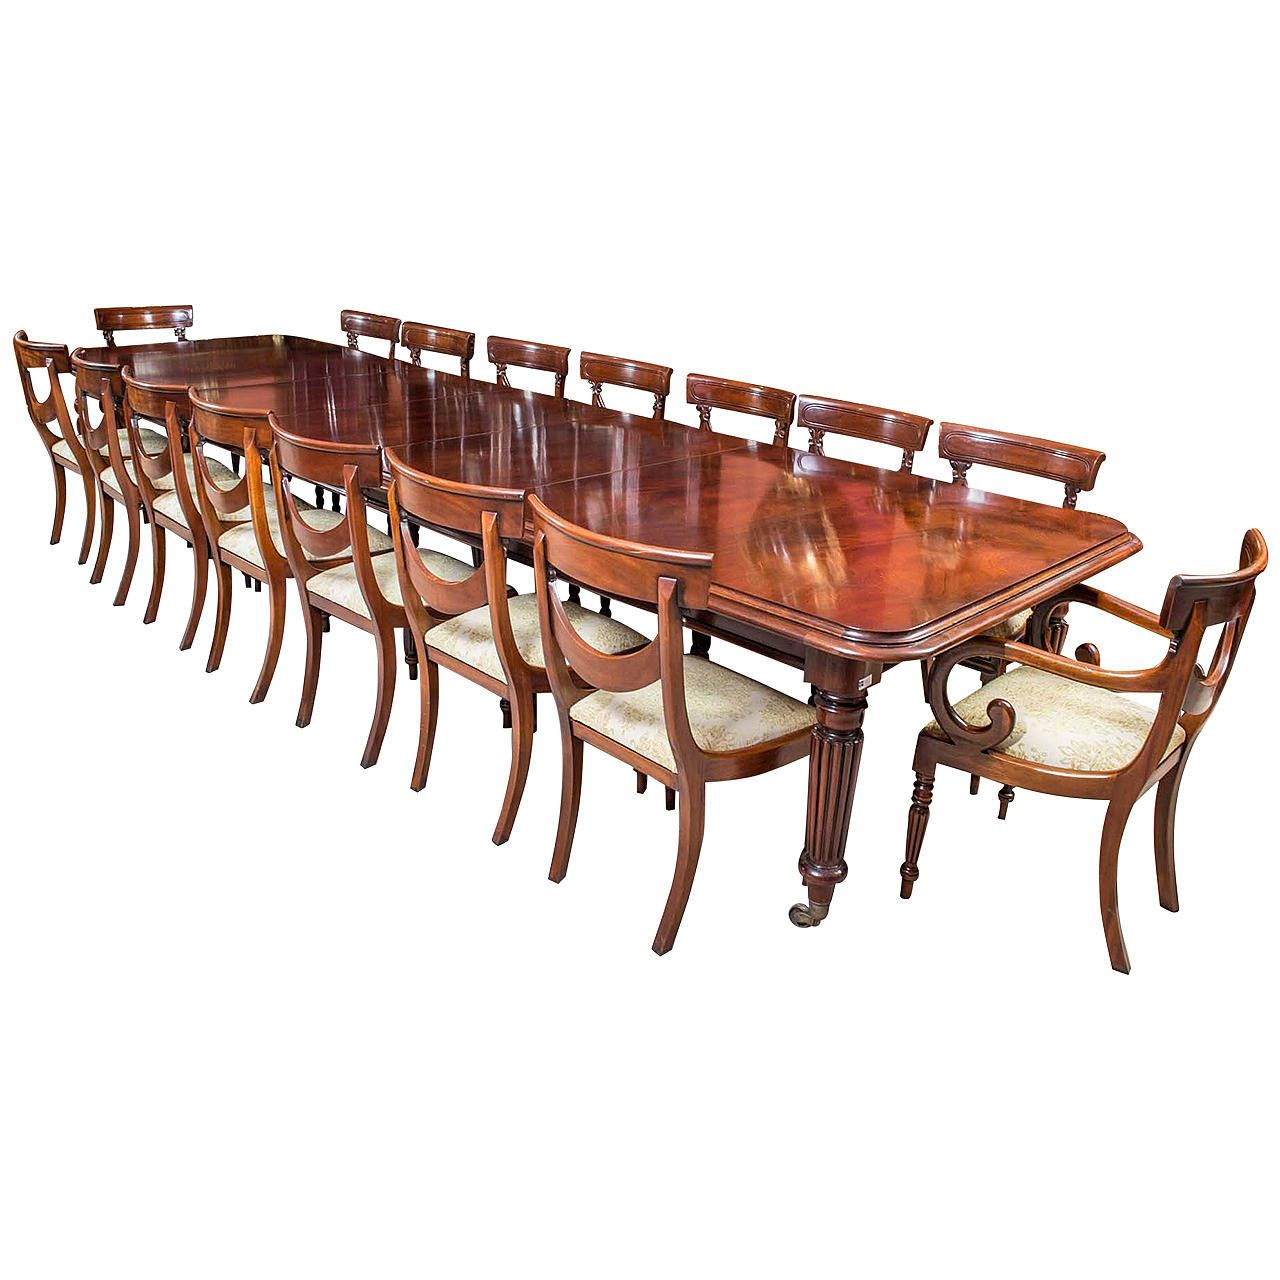 Vintage Mahogany Dining Conference Table 16 Chairs Table Mahogany Dining Table Table And Chair Sets